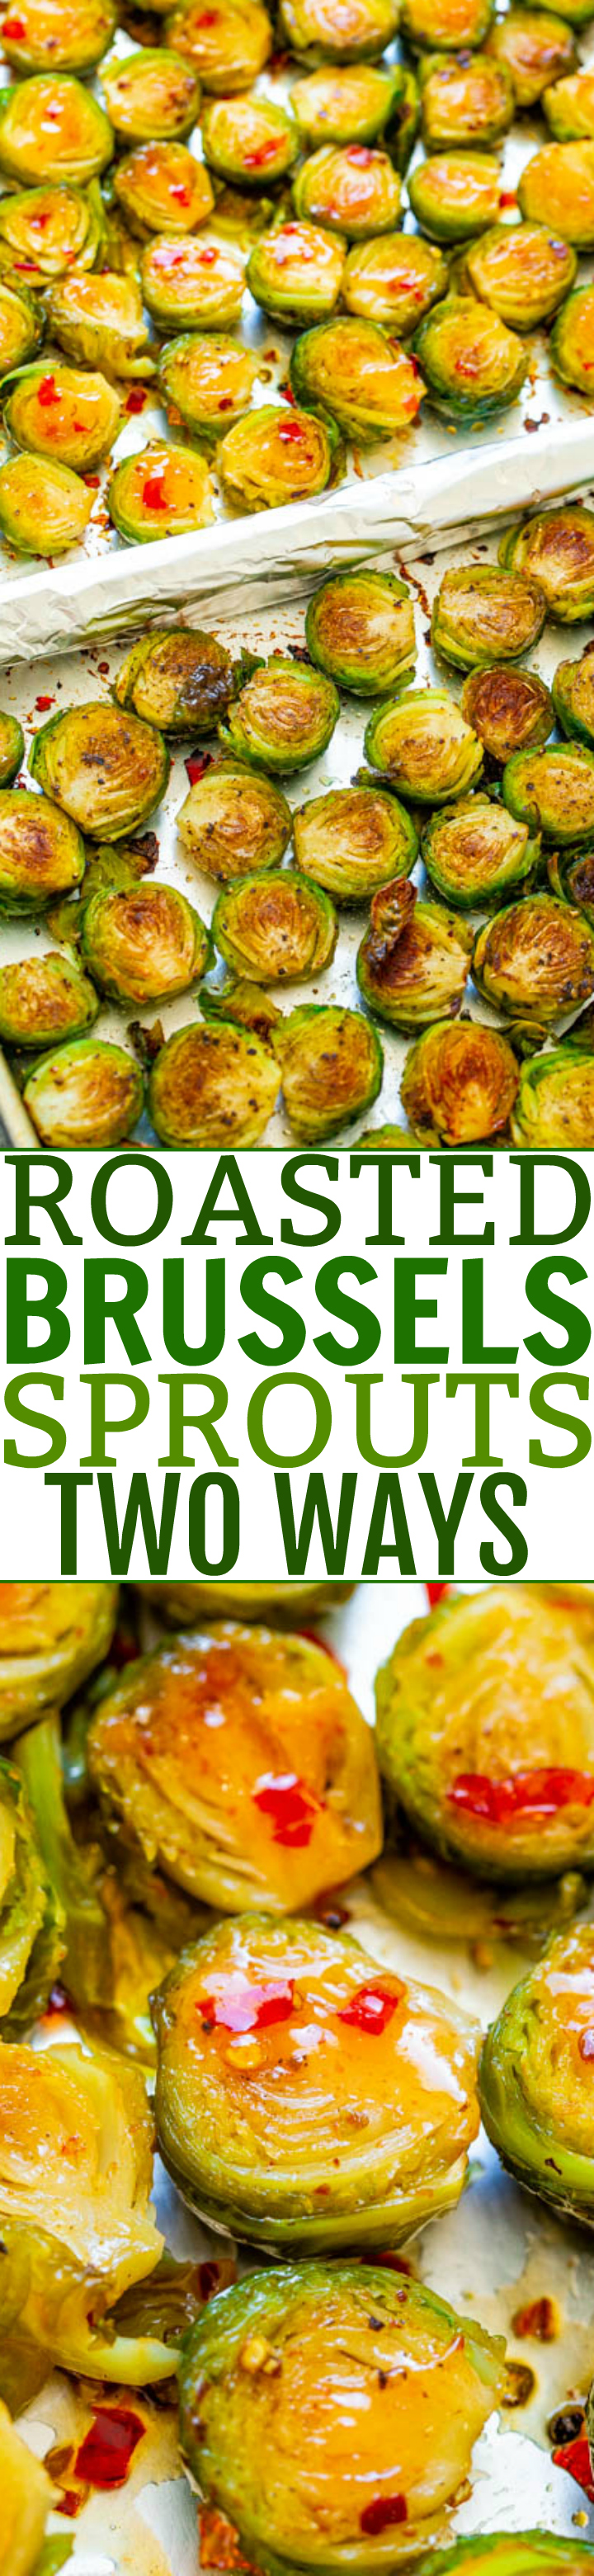 Roasted Brussels Sprouts {Two Ways In One} - An EASY way to try TWO different versions of Brussels Sprouts in one!! There's Sweet and Spicy Sprouts AND Traditional Roasted Sprouts! So different and both SO GOOD!!